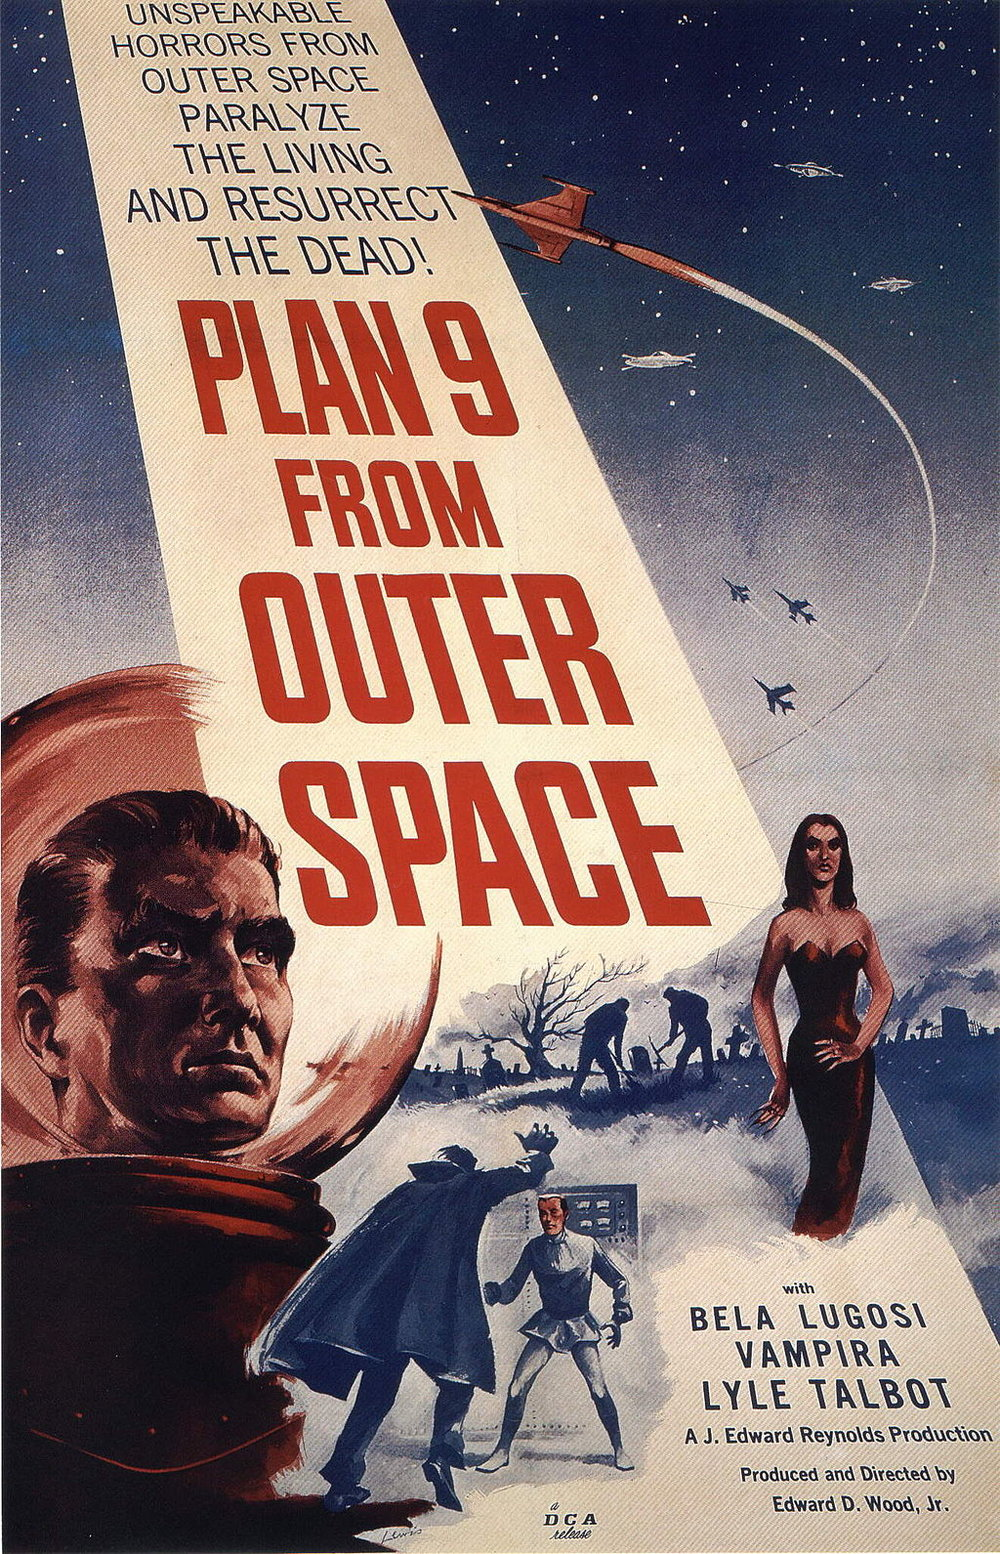 1024px-Plan_nine_from_outer_space.jpg